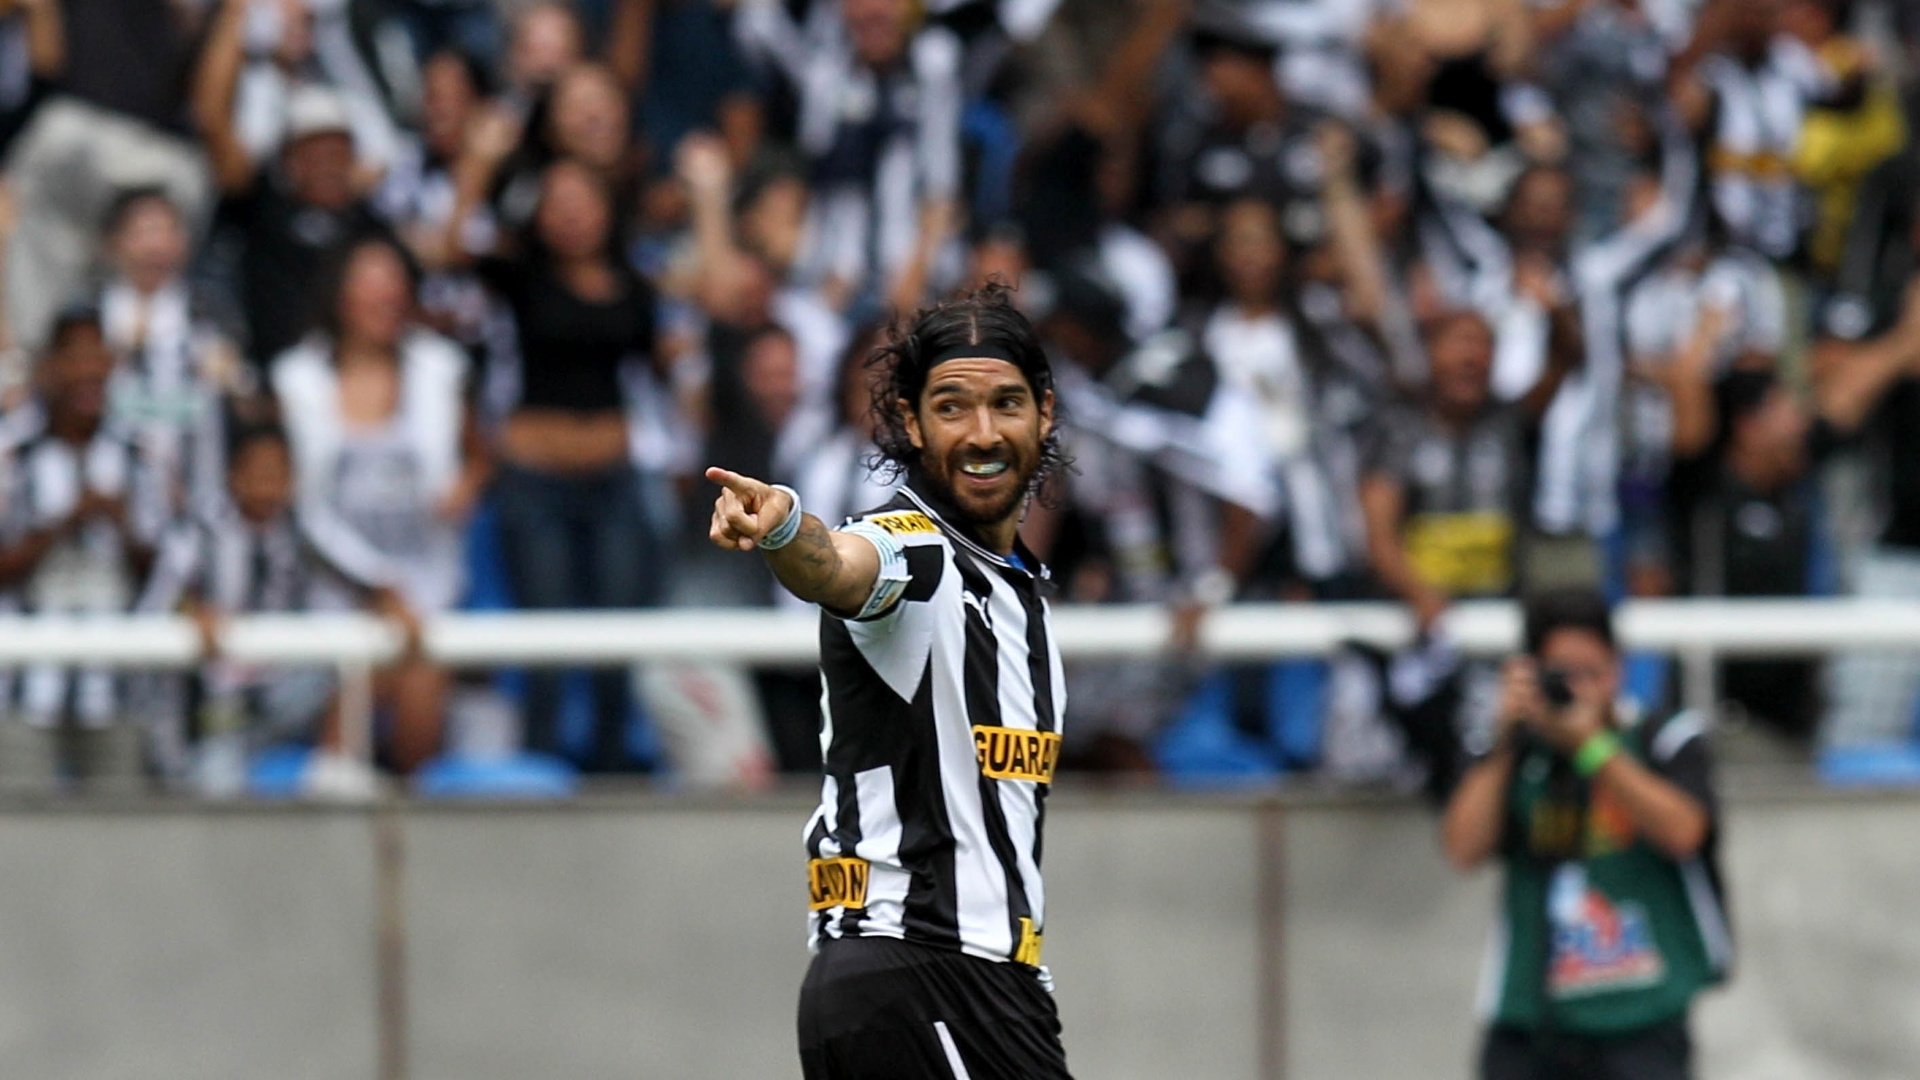 Atacante Loco Abreu comemora seu primeiro gol na partida entre Botafogo e Vasco, no estdio do Engenho